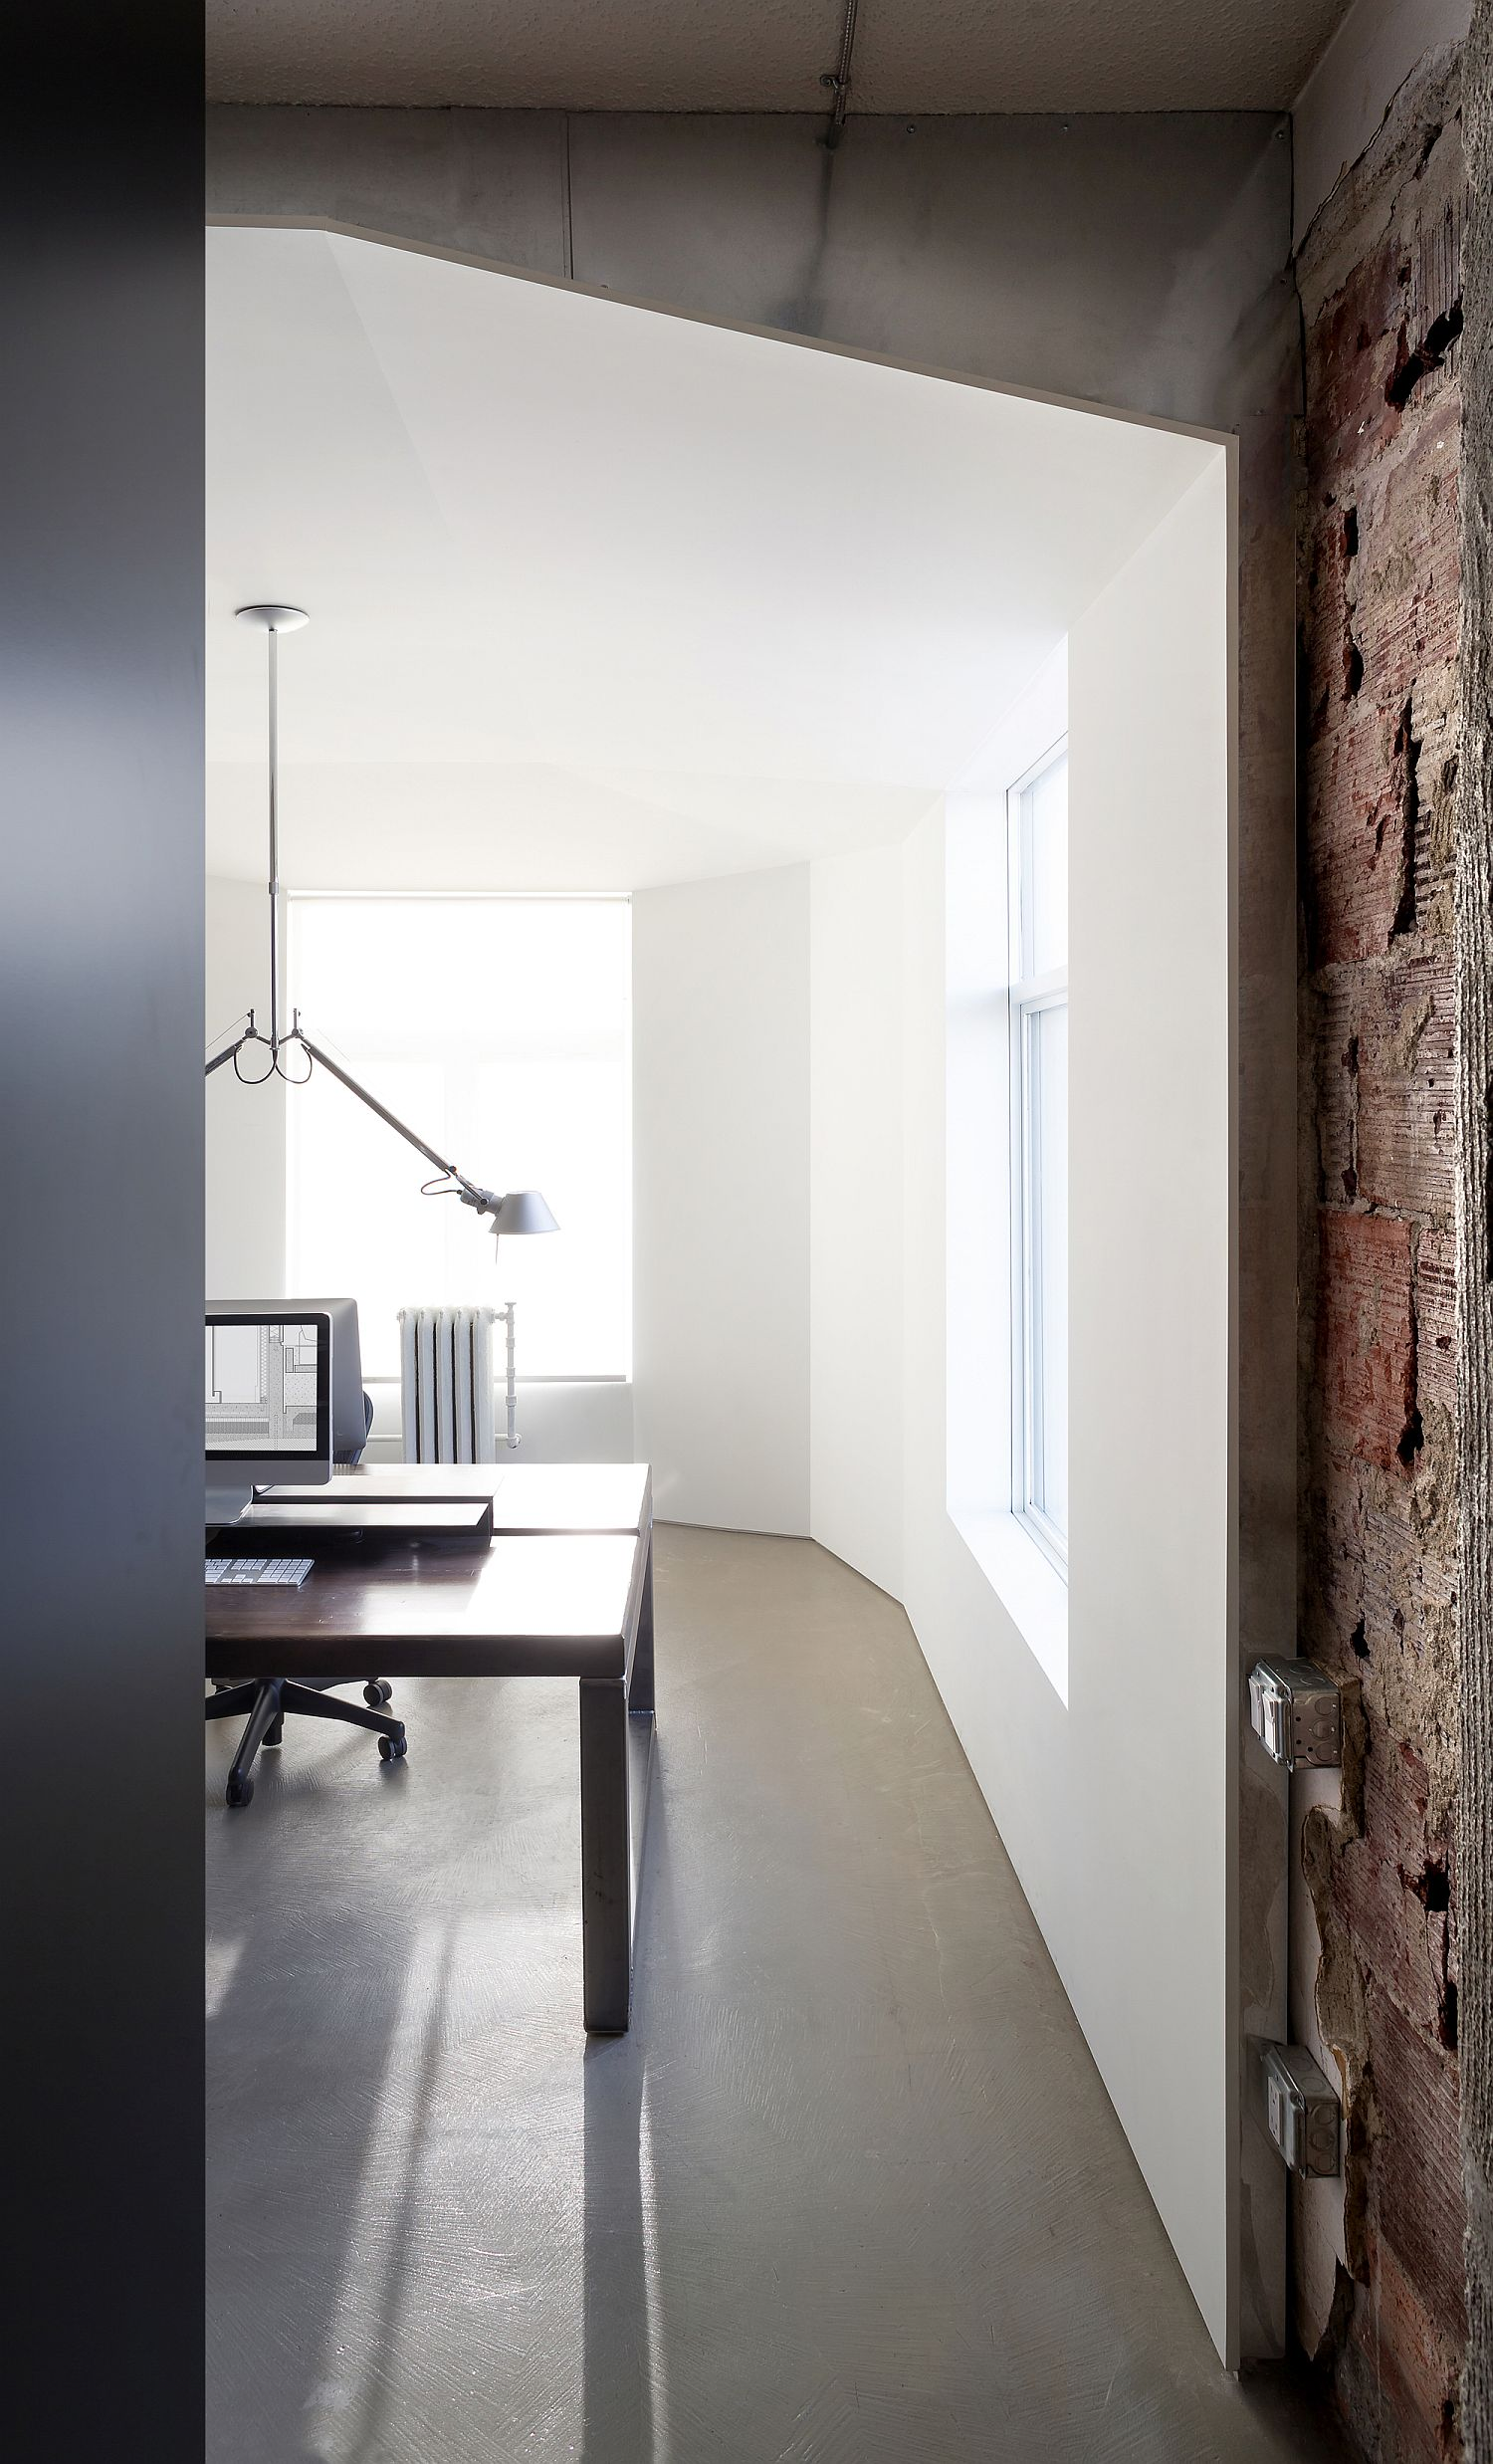 Natural-light-fills-the-already-white-office-interior-with-even-more-brightness